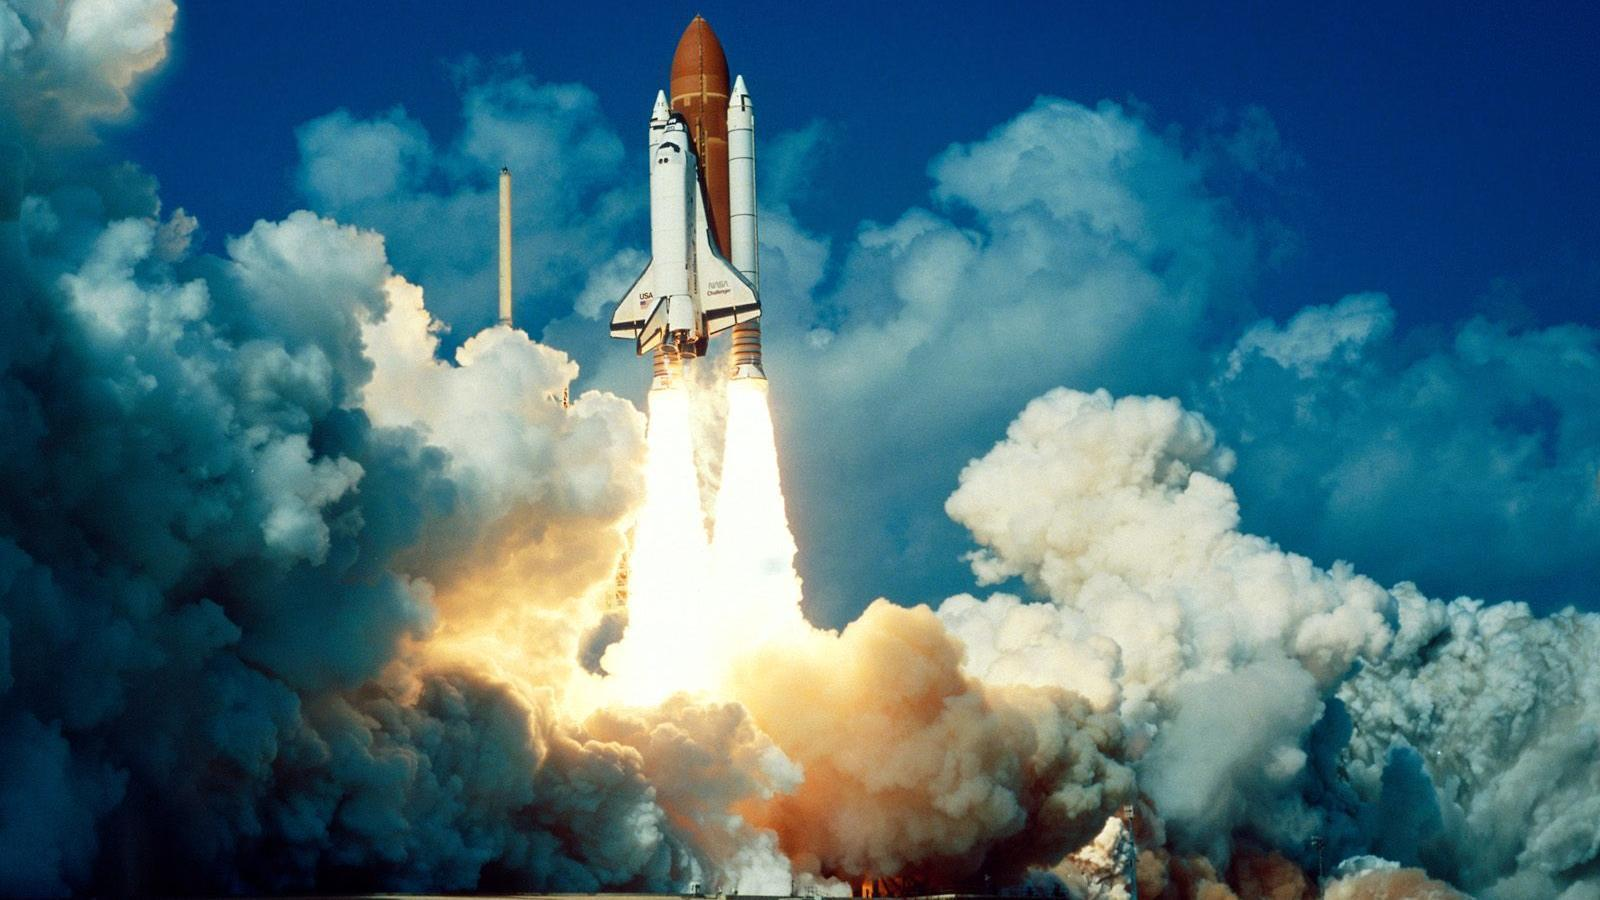 space shuttle space background - photo #3